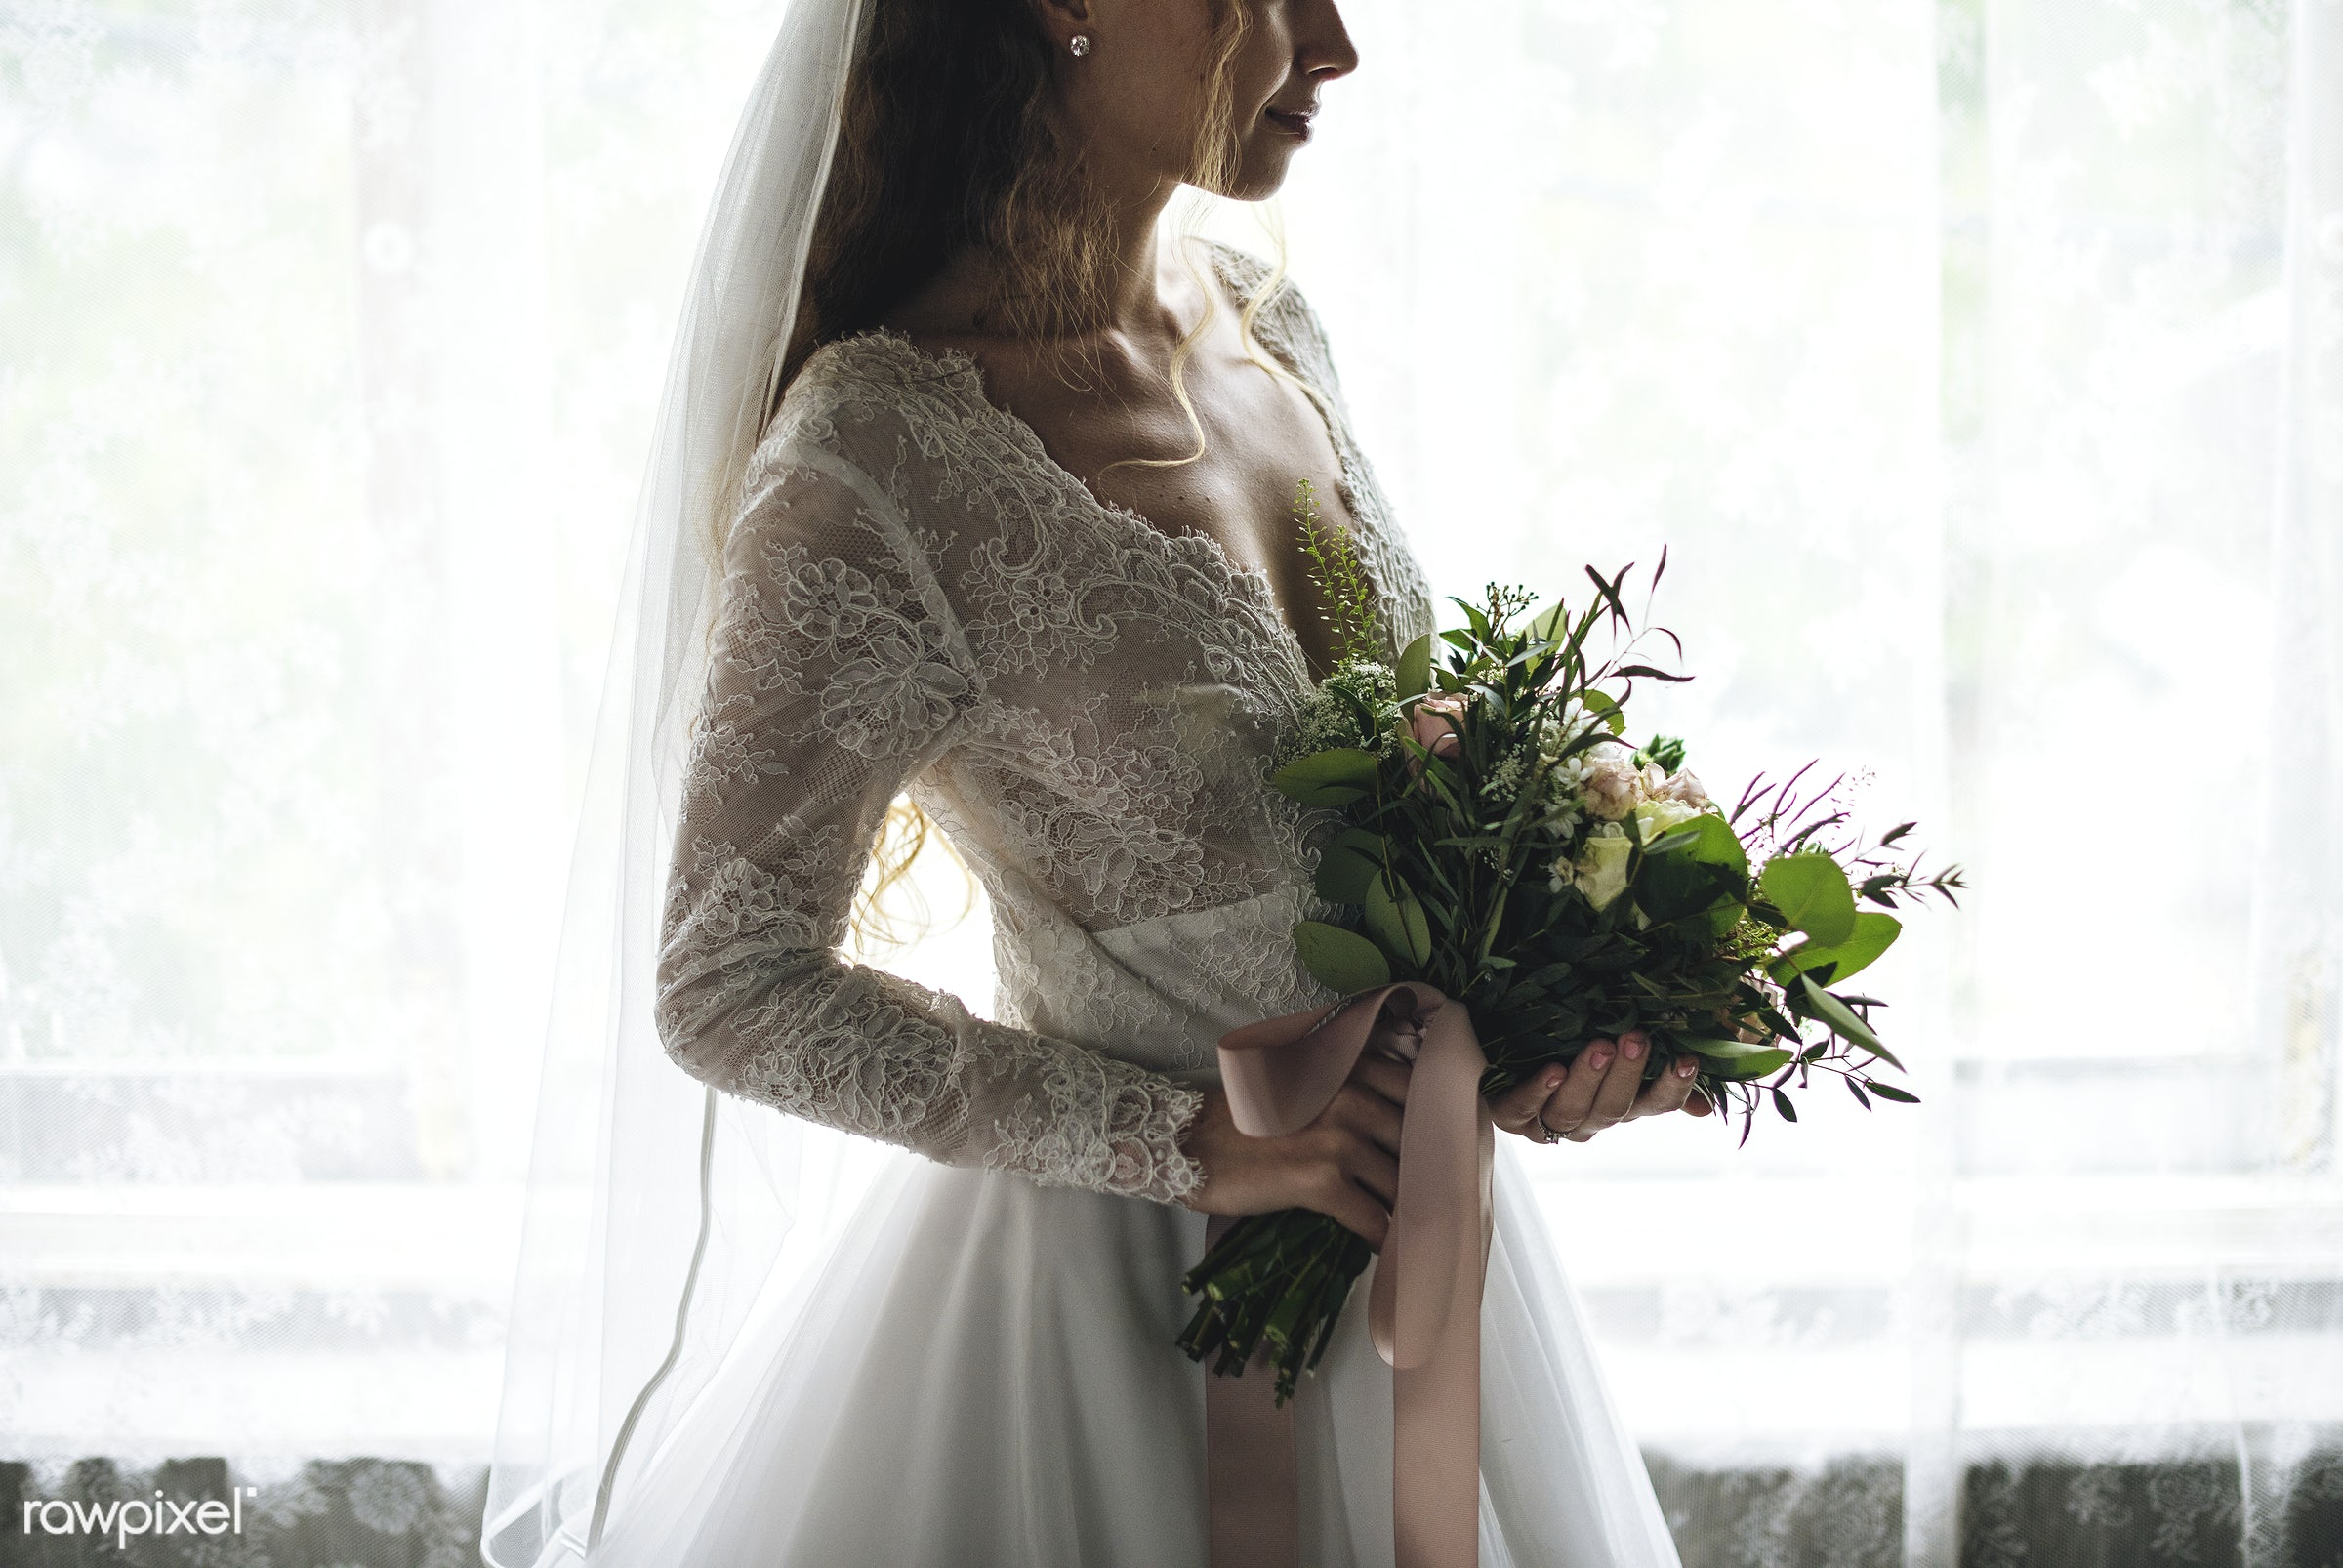 Attractive Beautiful Bride Holding Flowers Bouquet - bouquet, person, holding, people, caucasian, love, glamour, woman, gown...